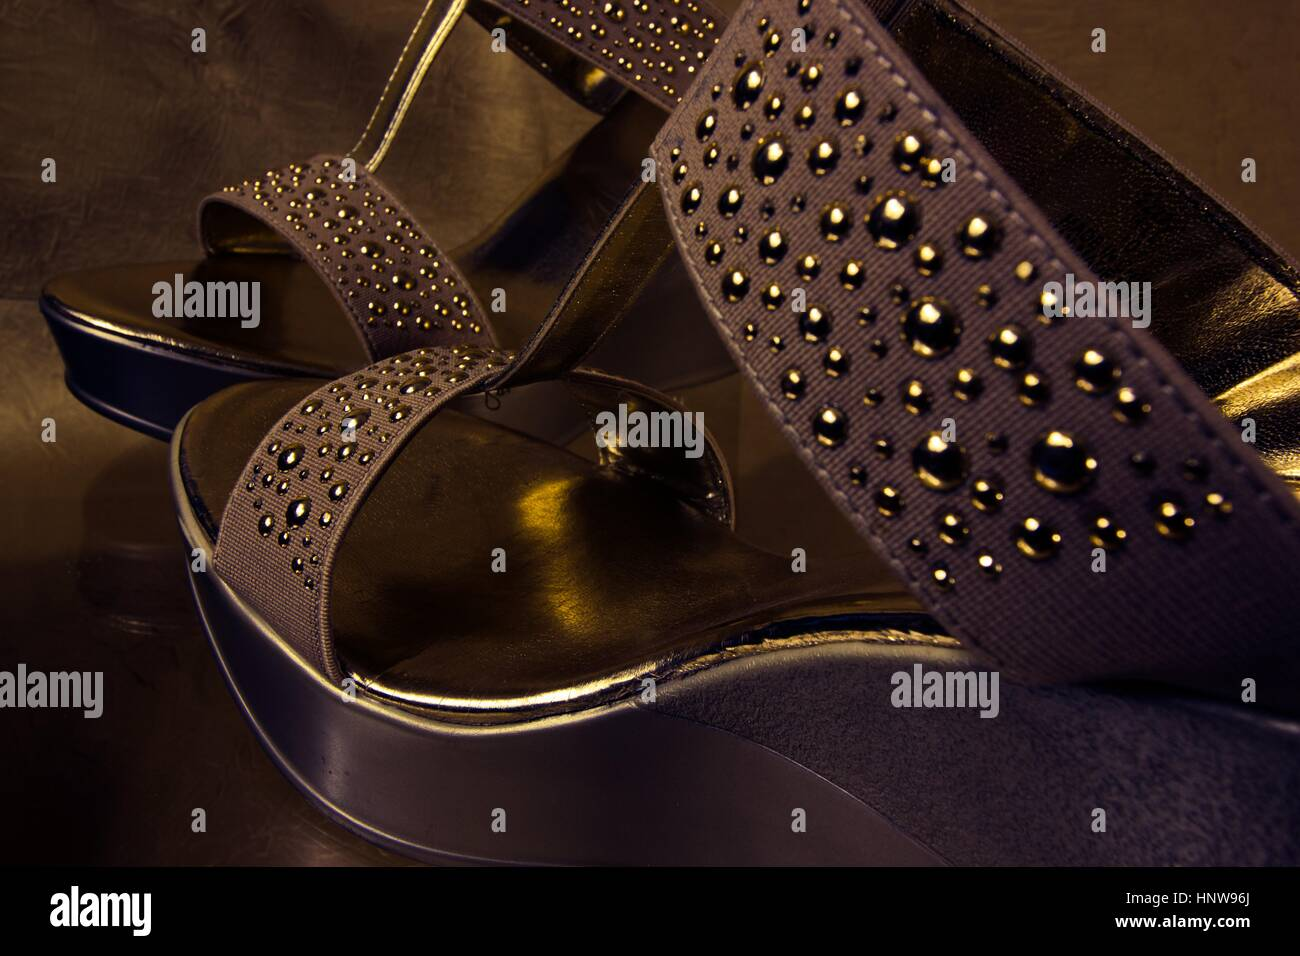 Sassy golden shoes in twilight - Stock Image